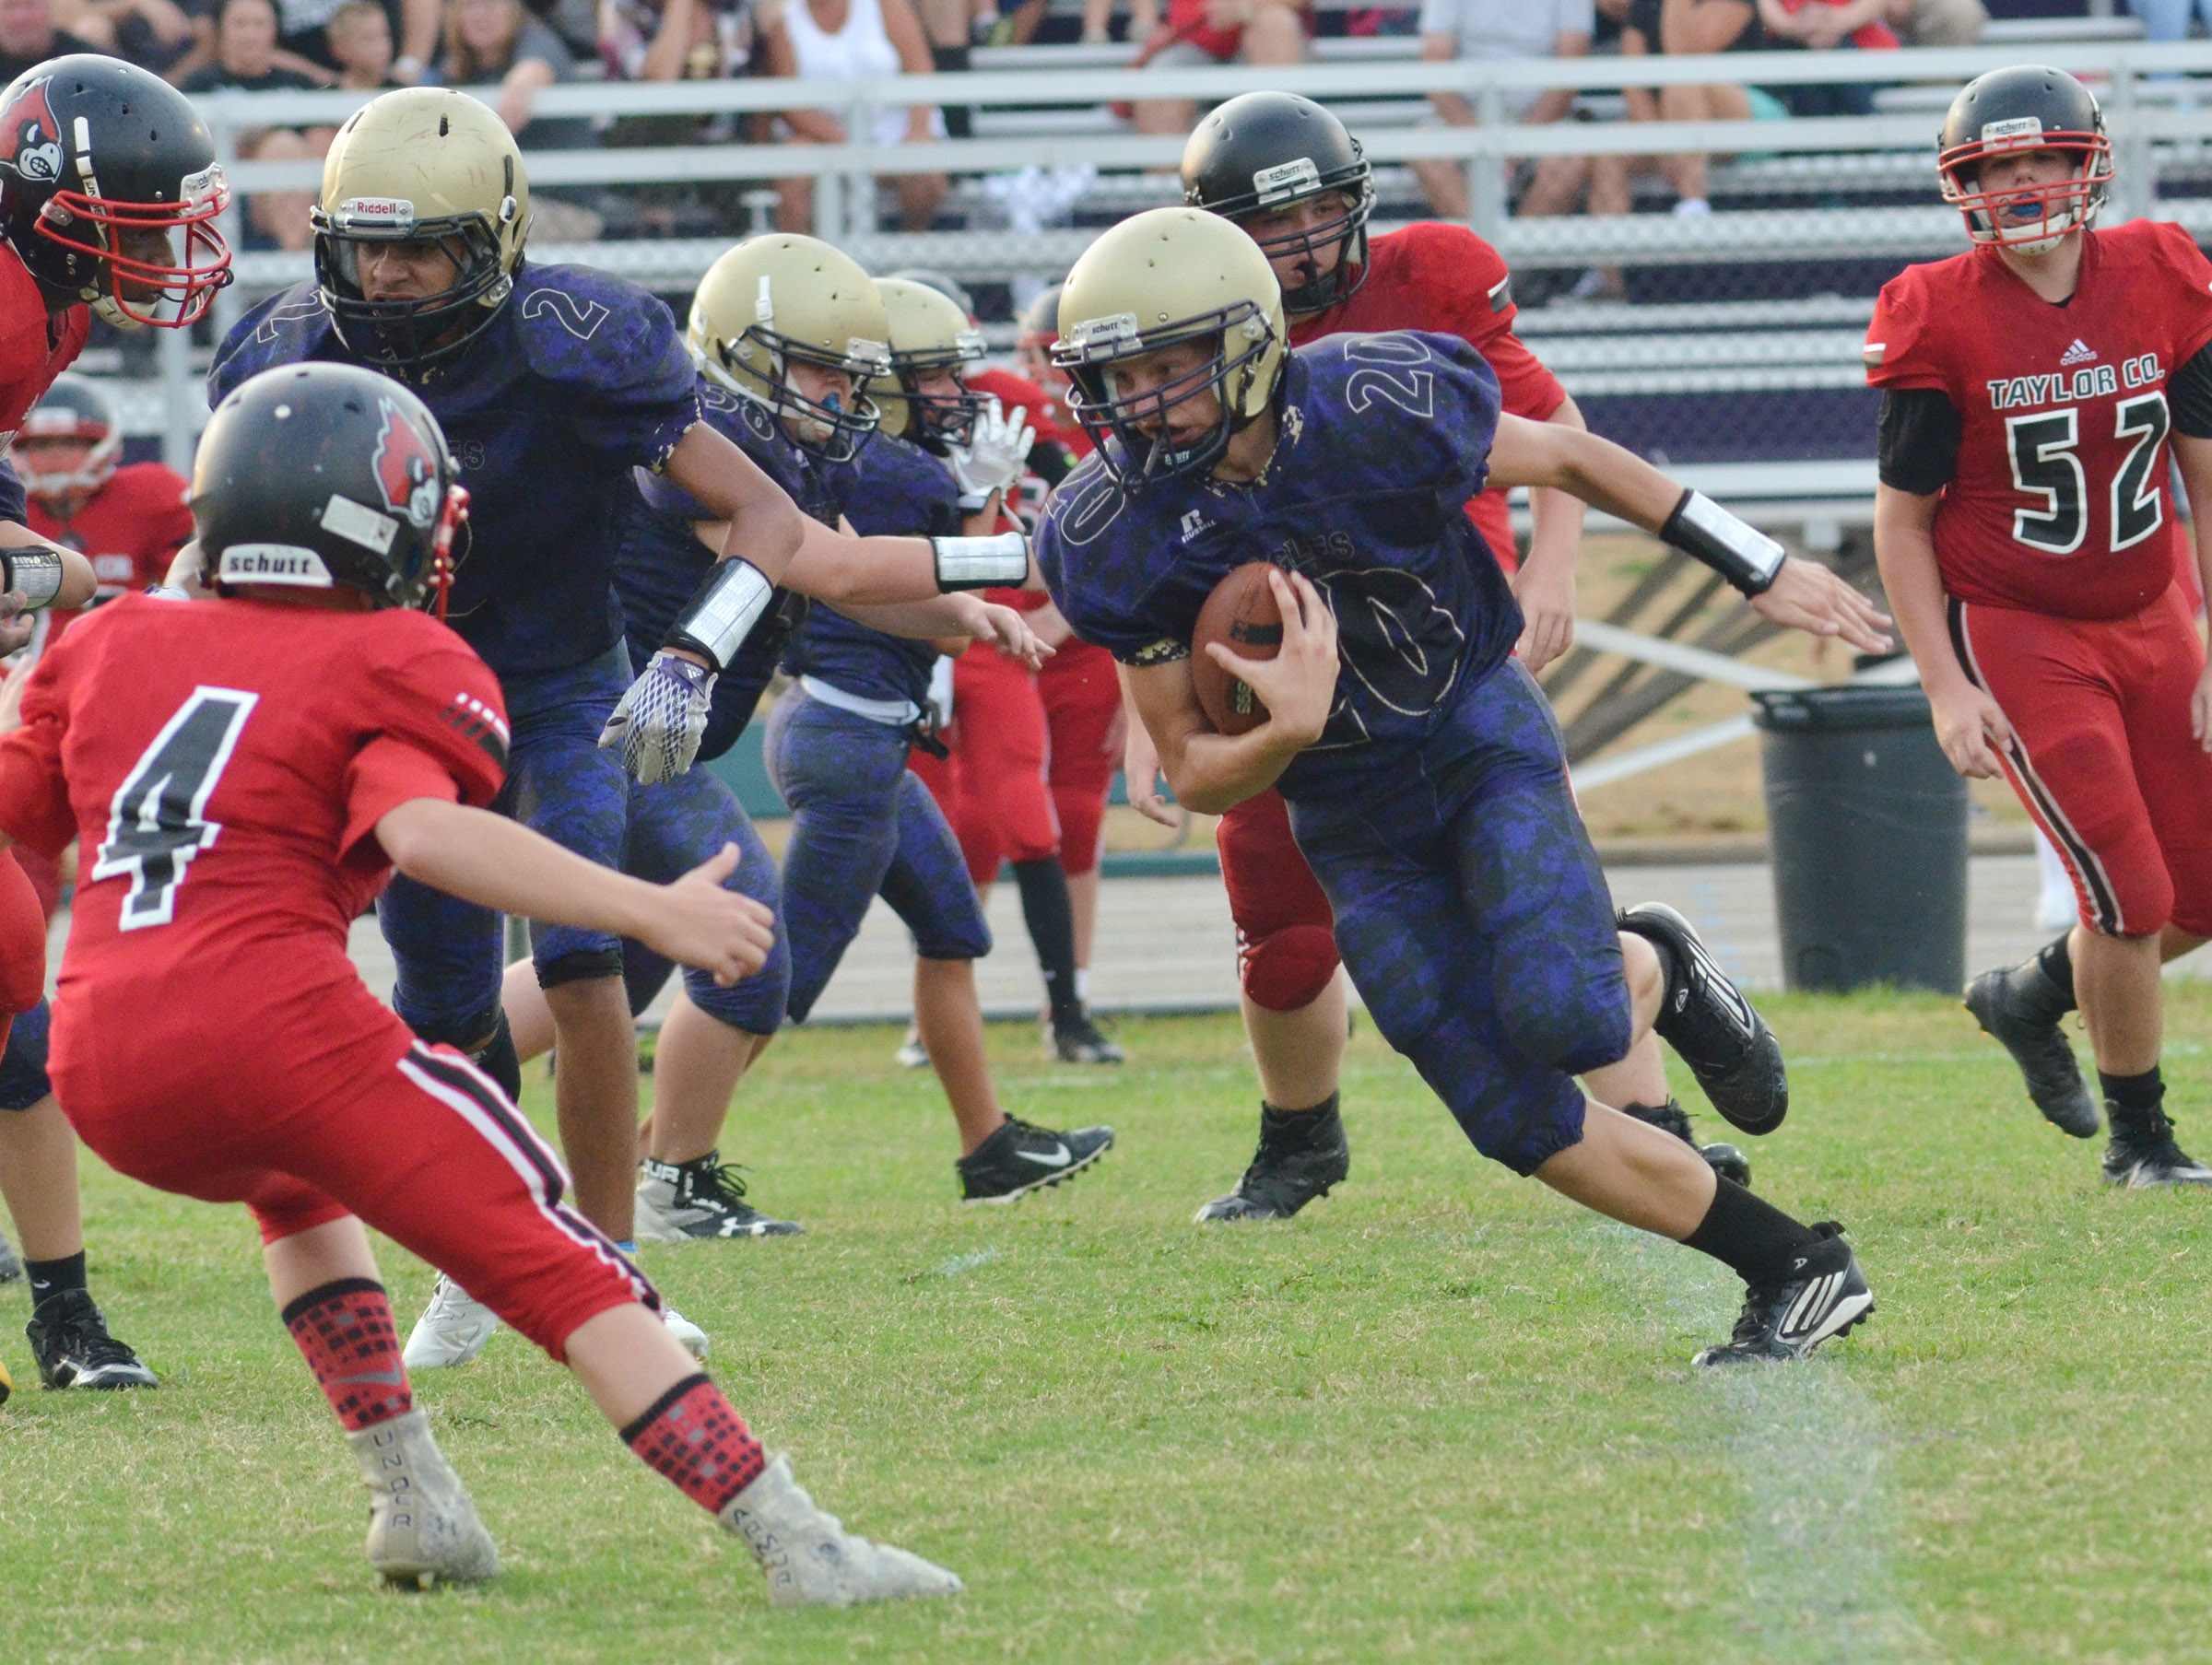 CMS seventh-grader Damon Johnson runs the ball.